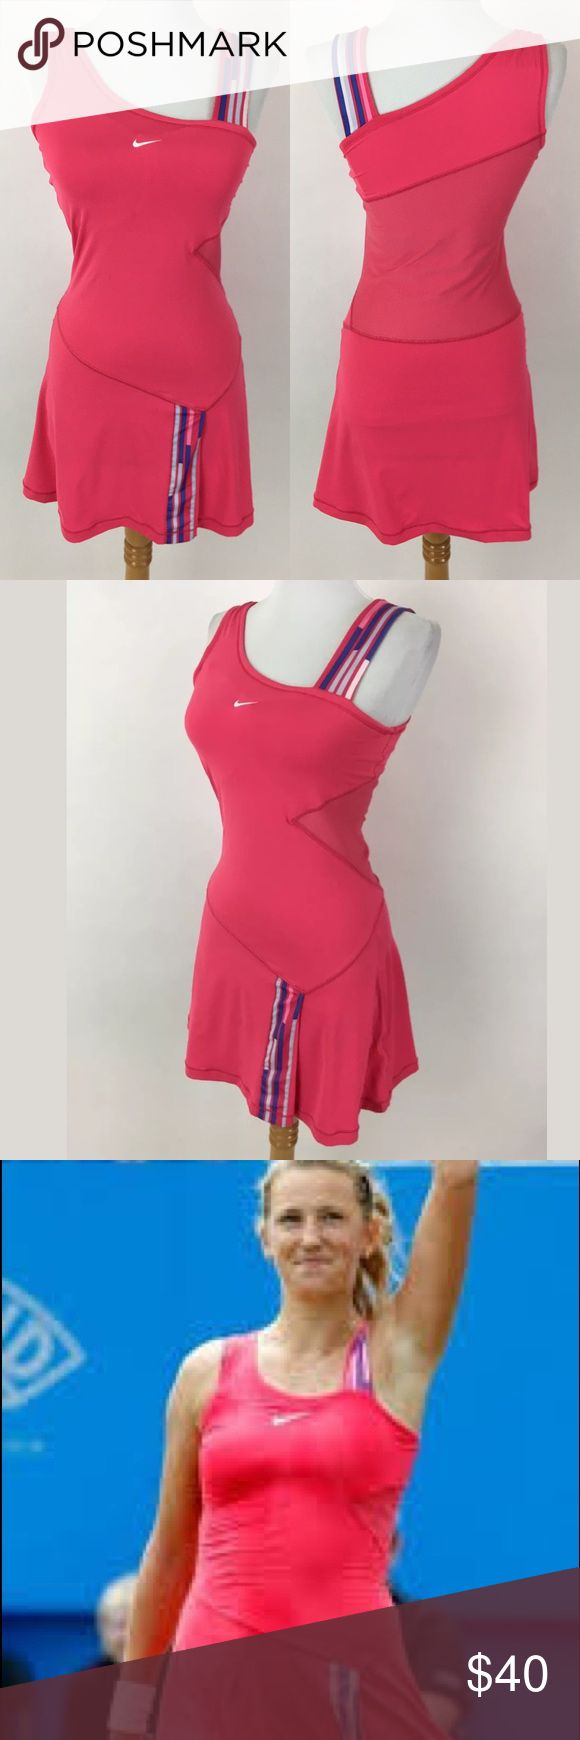 Nike Break Point tennis dress It has a built in bra. Waist: 27 Bust: 30 Length Shoulder to Hem: 31.5 88% polyester, 12% Spandex  Item #2029 Nike Dresses